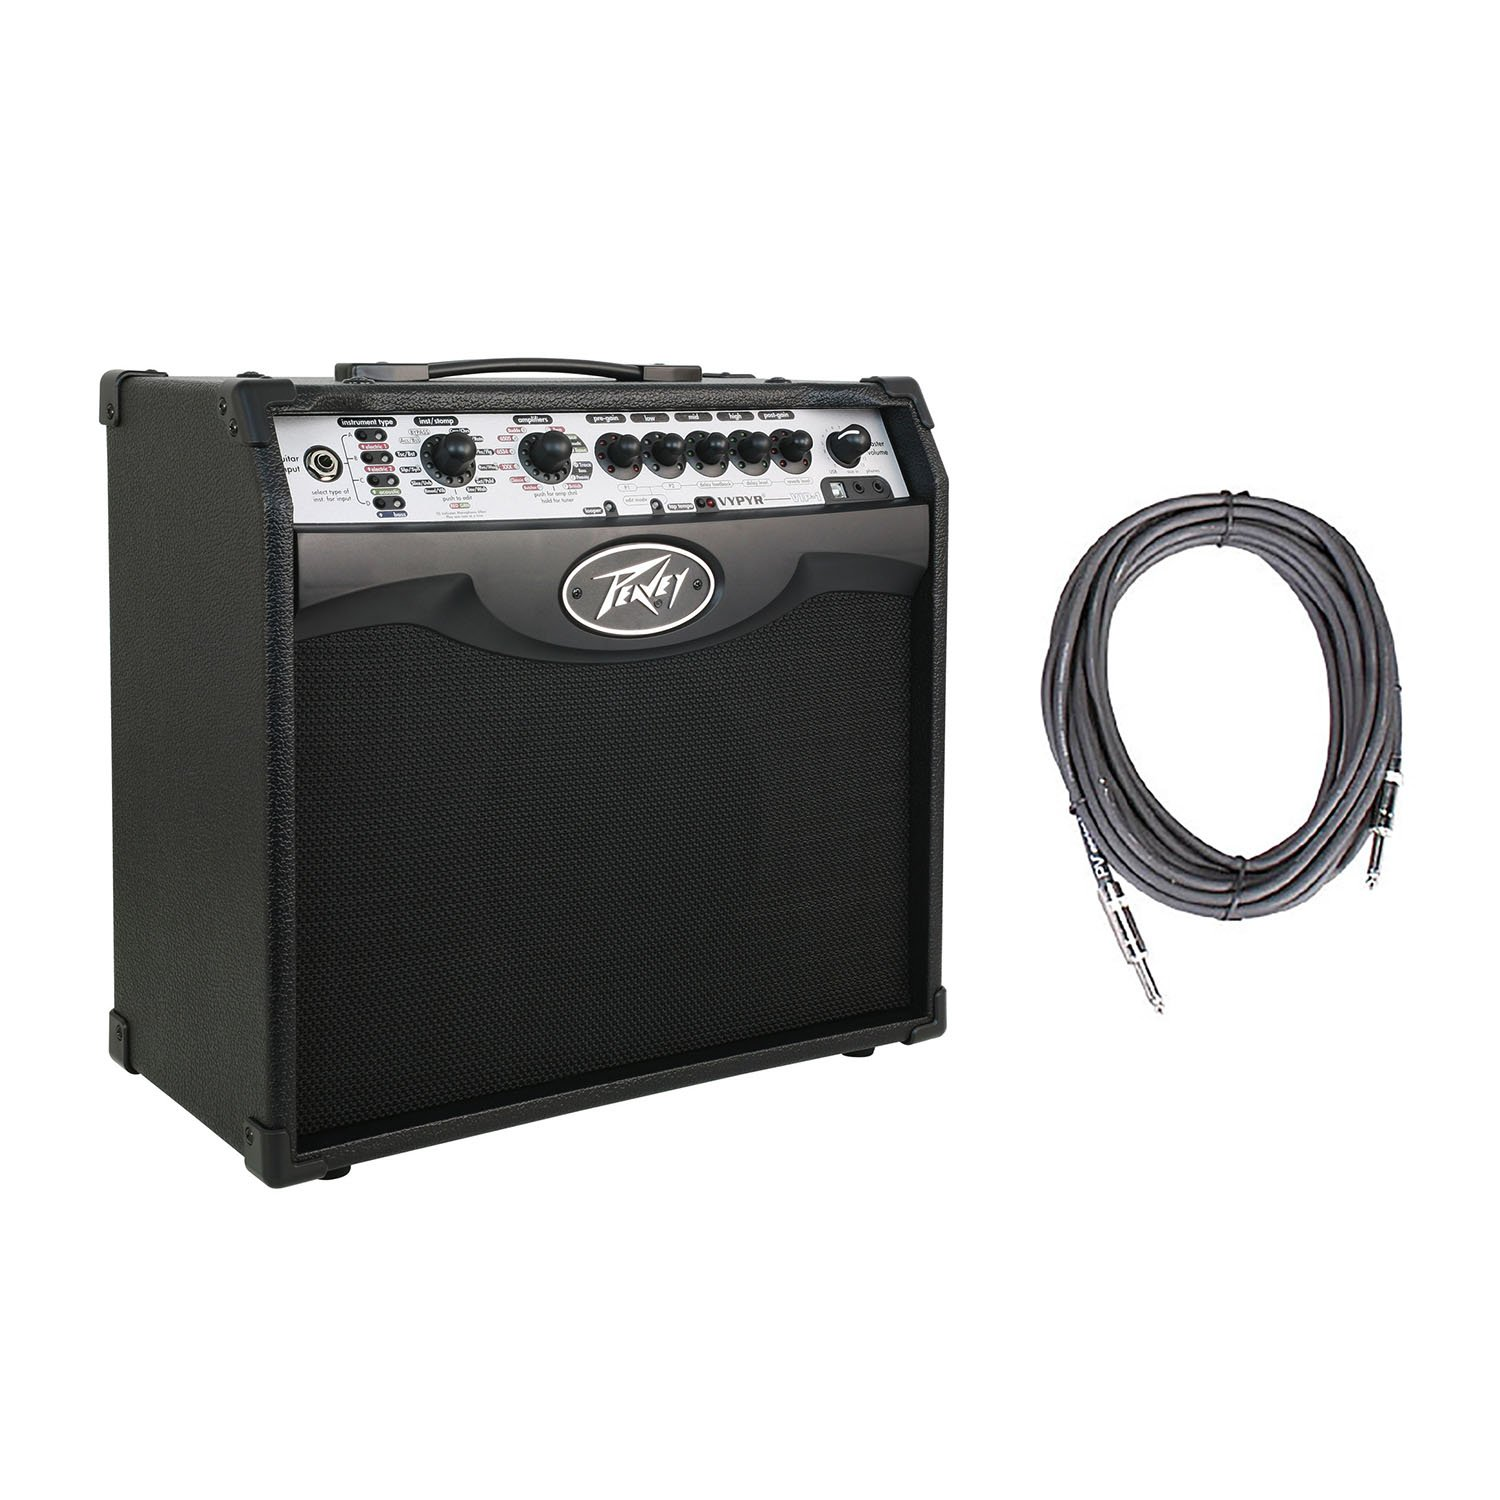 Peavey Vypyr VIP 1 Combo Modeling Instrument 20 Watt Amplifier Amp + 10' Instrument Cable by Peavey